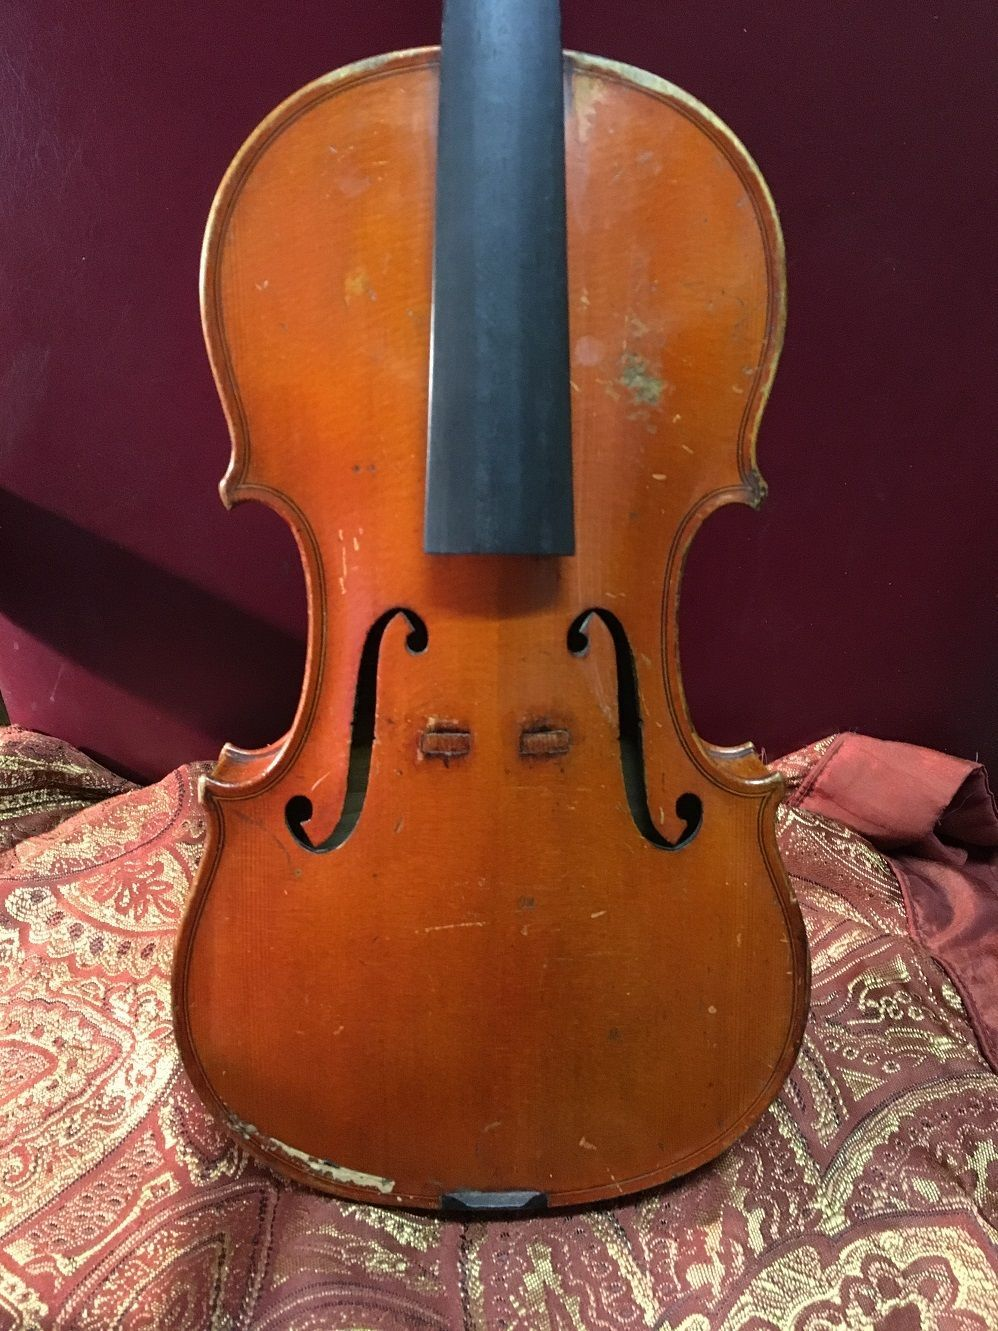 Antique Old Violin https://t.co/BdgLoNTs2I https://t.co/bUZO4RGTMN